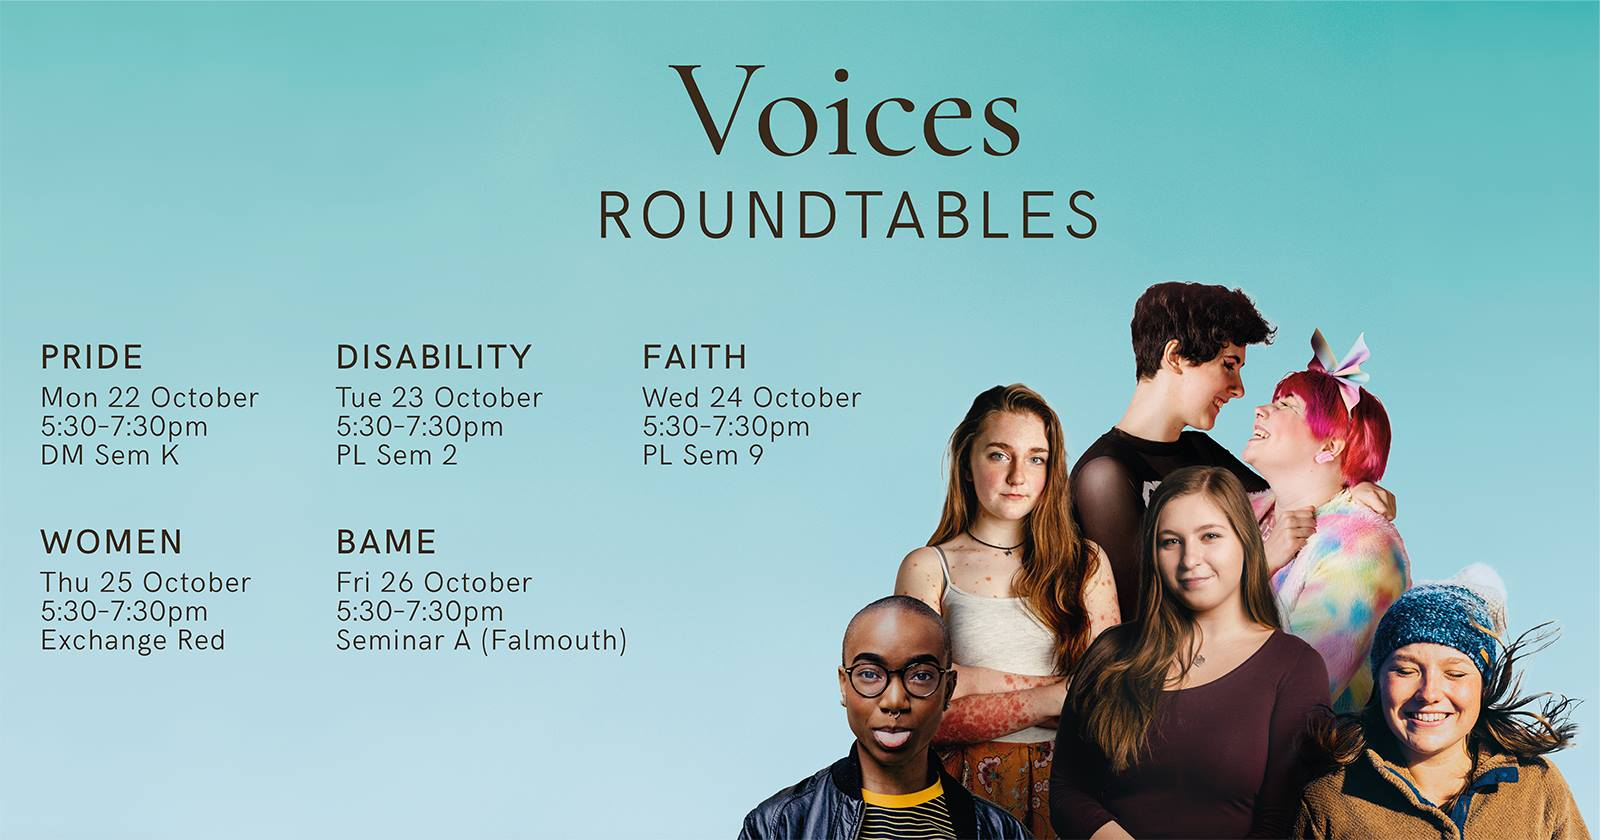 Voices Roundtables